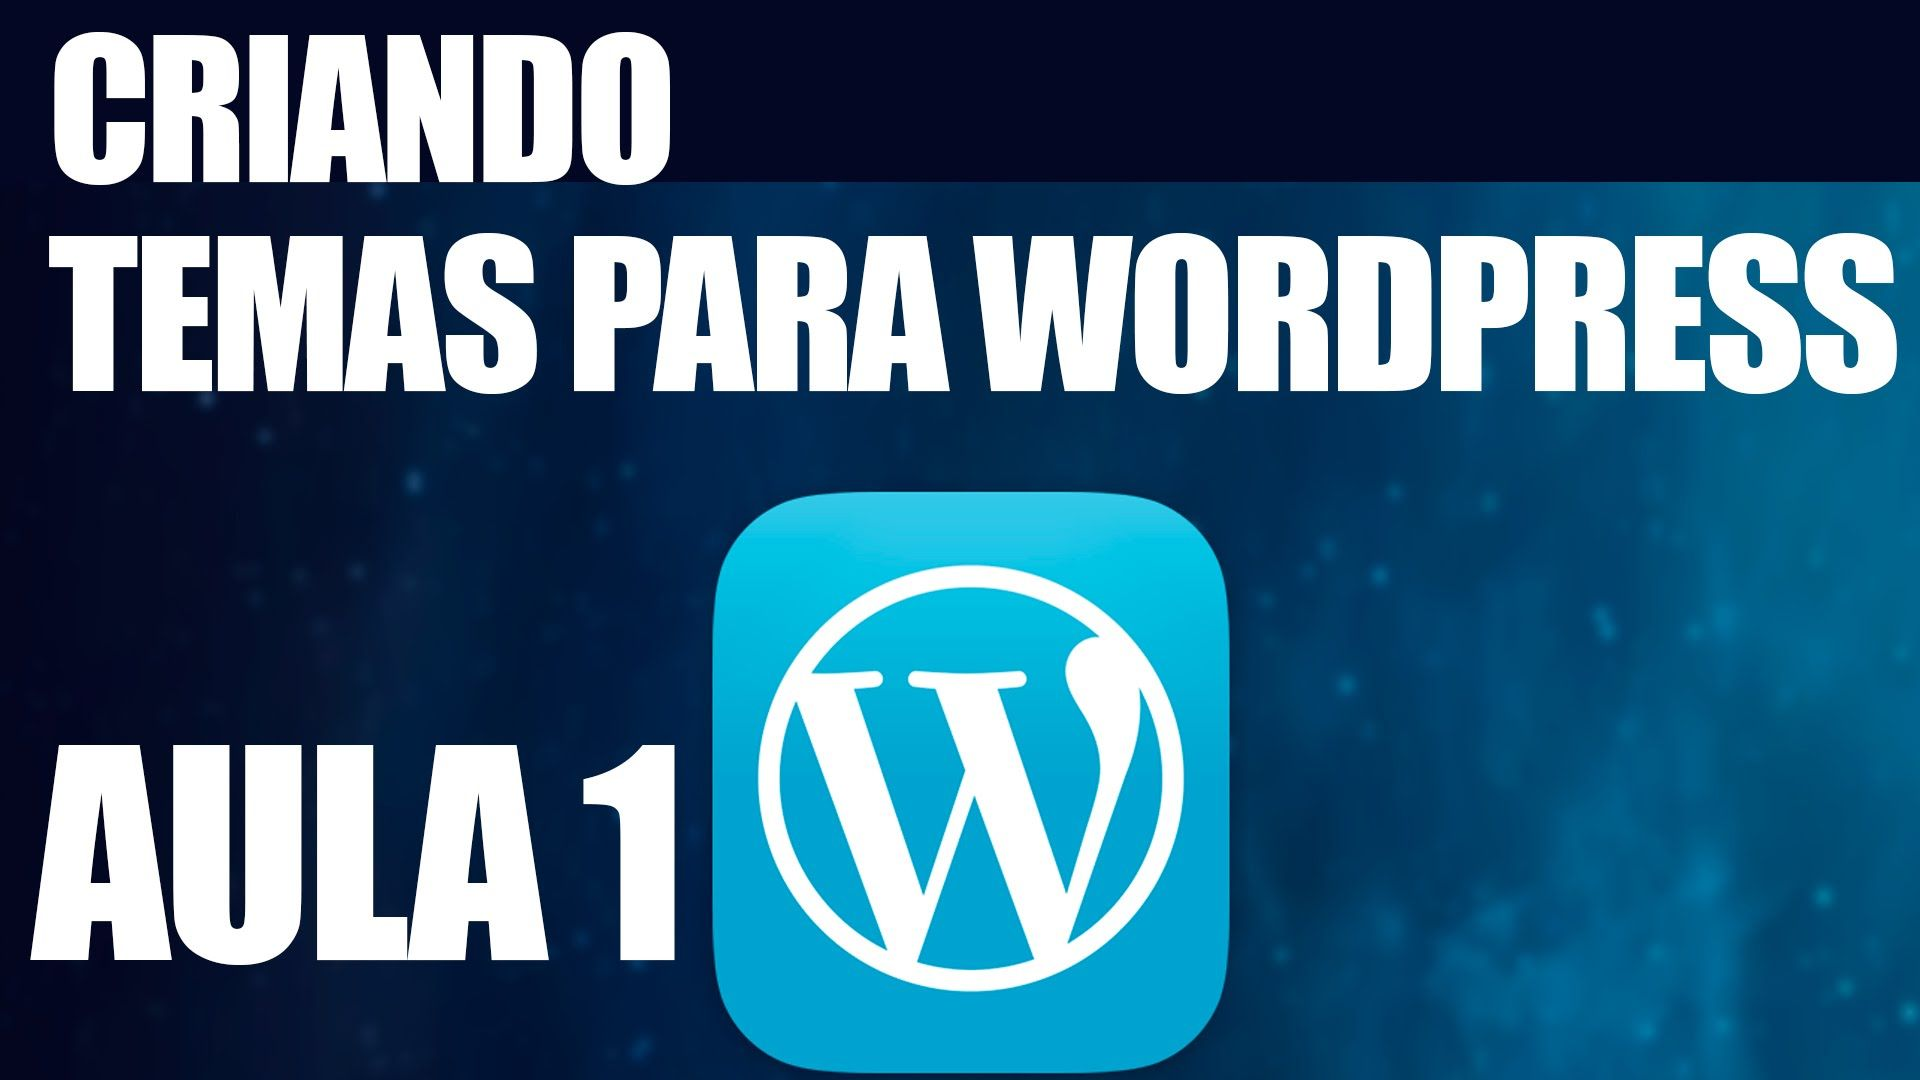 Criando Temas para wordpress - Aula 1 Instalando o Wordpress no servidor...